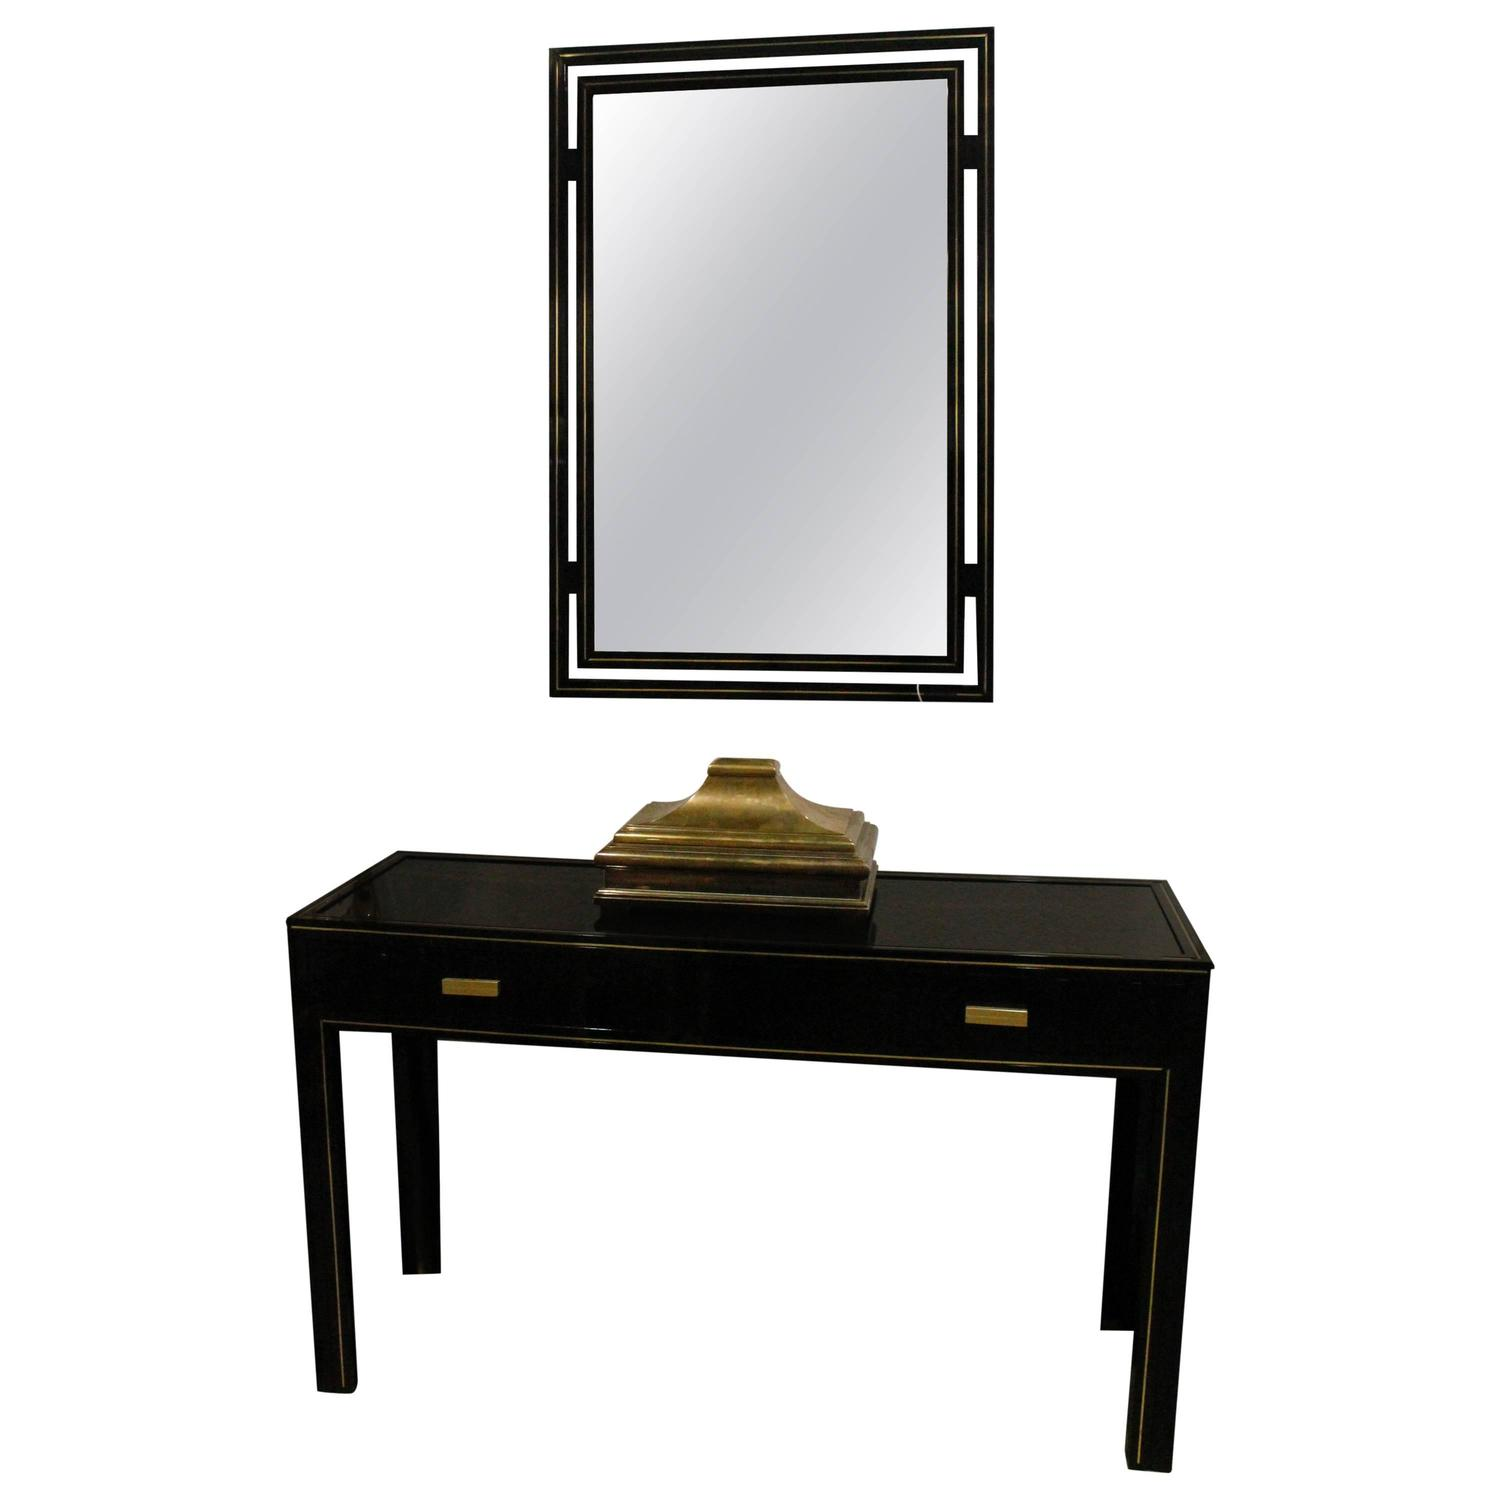 Pierre vandel paris desk console table and wall mirror for Wall table with mirror